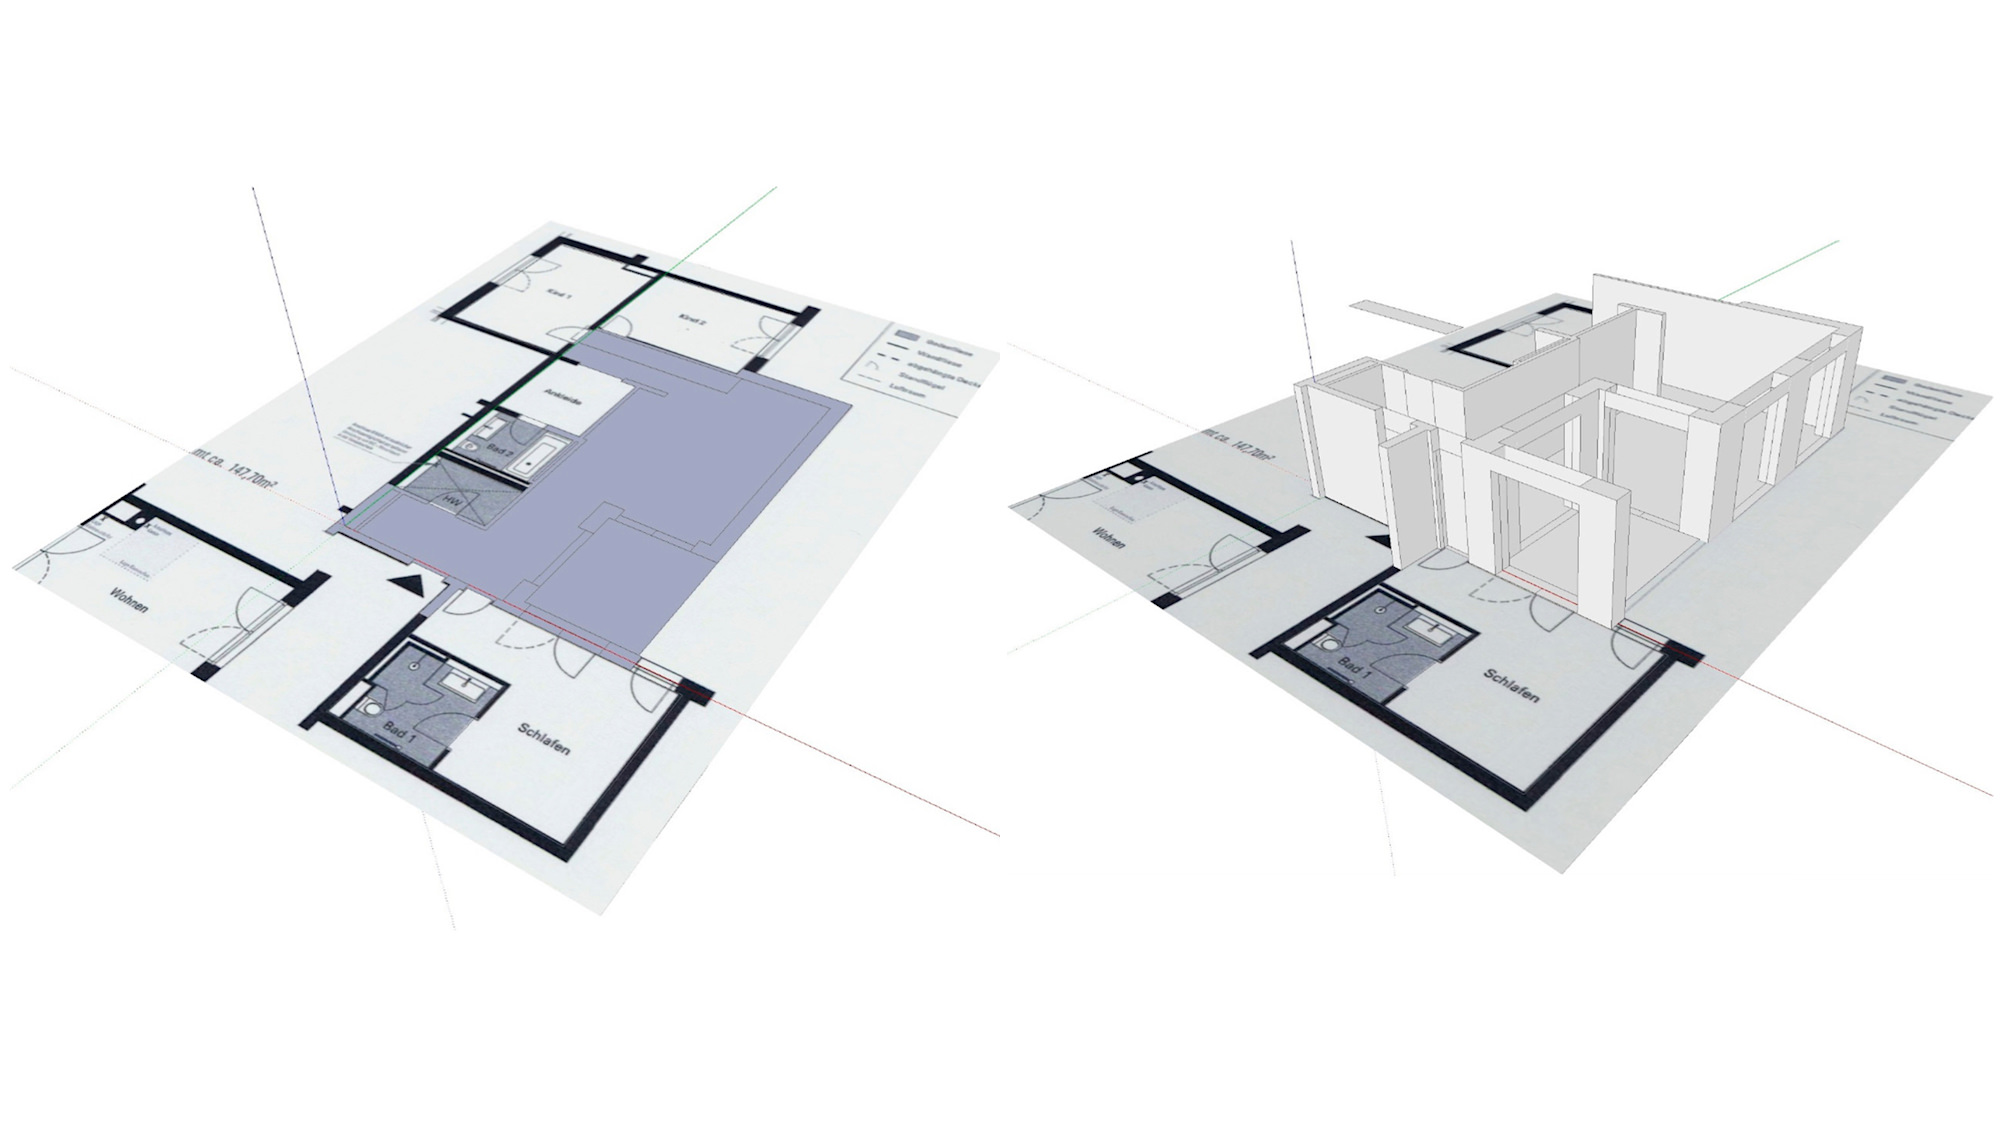 How to draw a floor plan in SketchUp